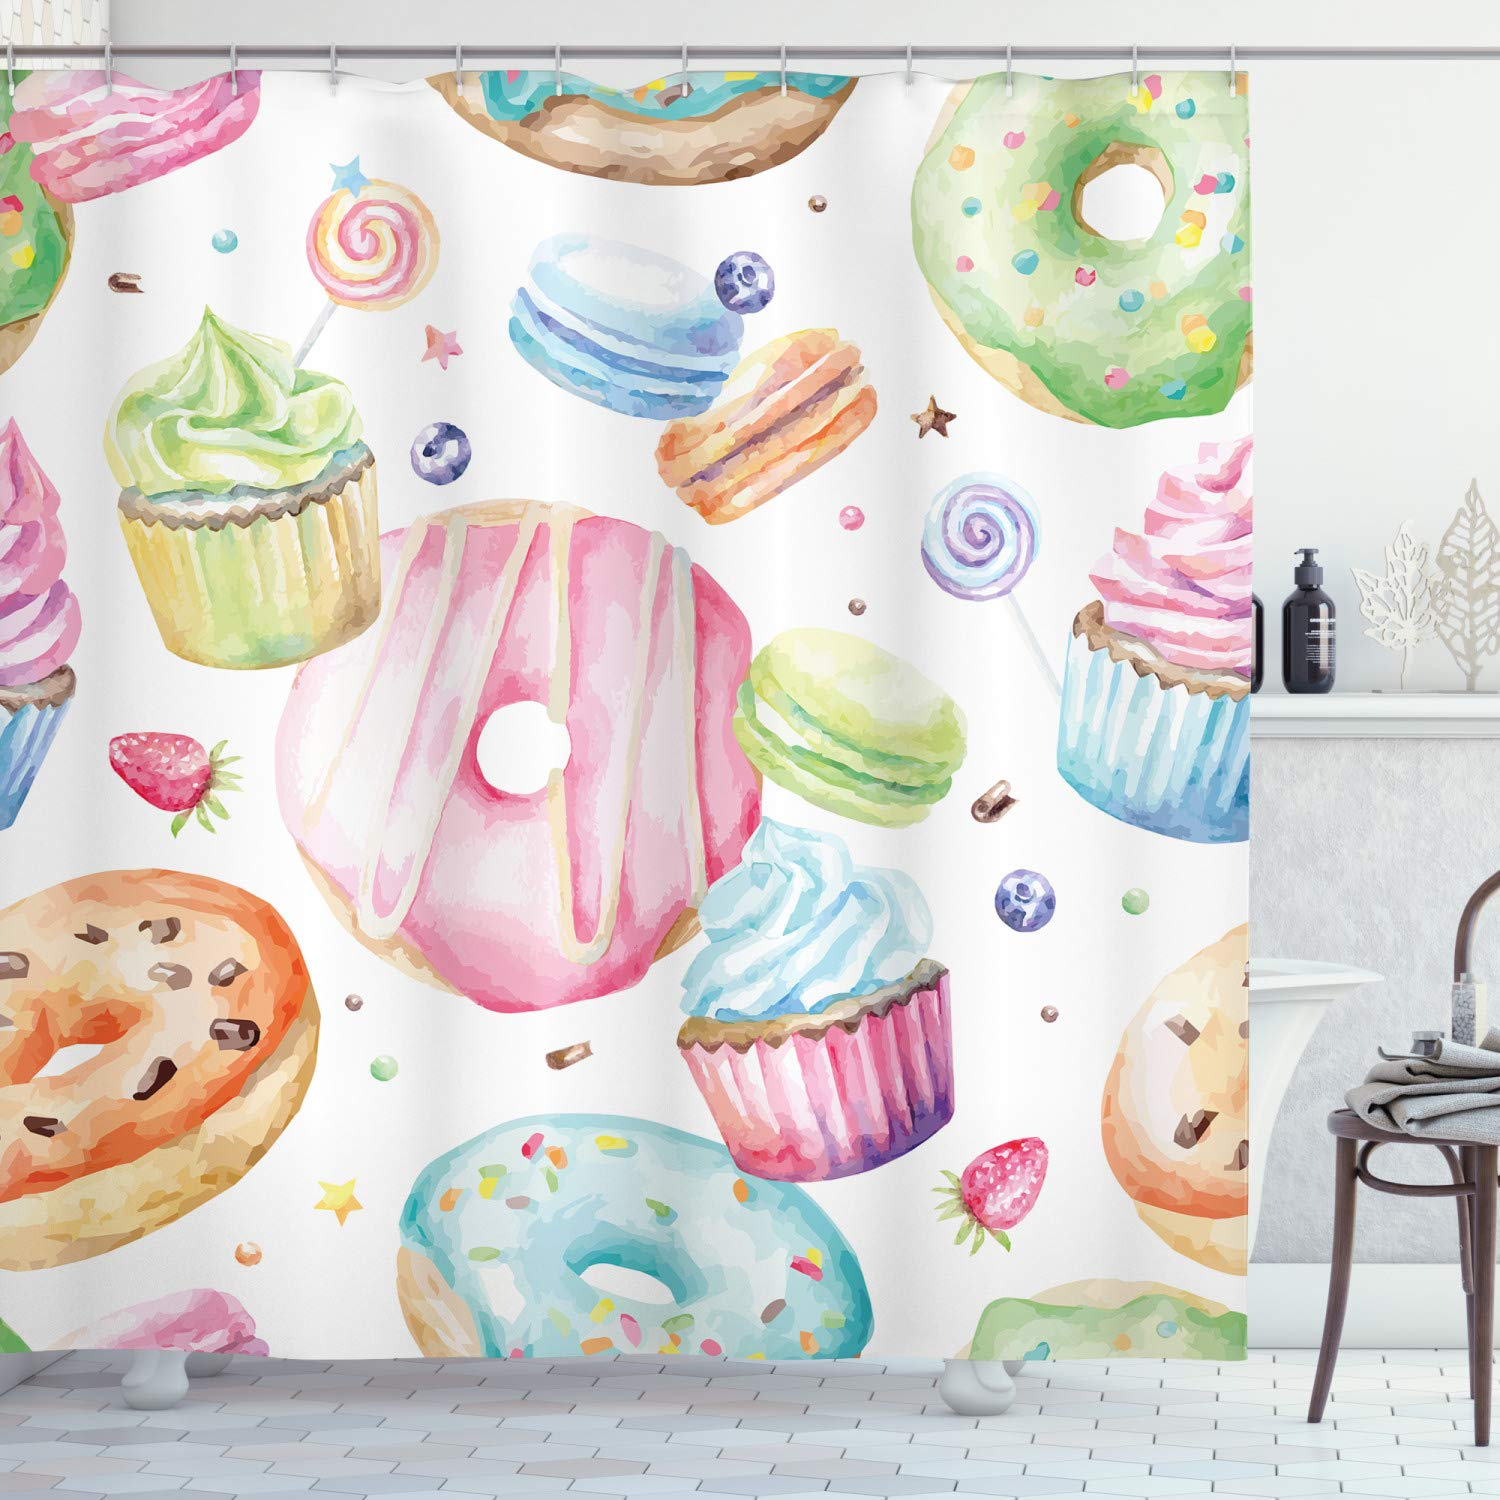 Ambesonne Sweet Decor Shower Curtain by, Delicious Macaron Cupcakes Donuts Muffins Sugar Tasty Yummy Watercolor Design, Fabric Bathroom Decor Set with Hooks, 75 Inches Long, Green Pink by Ambesonne